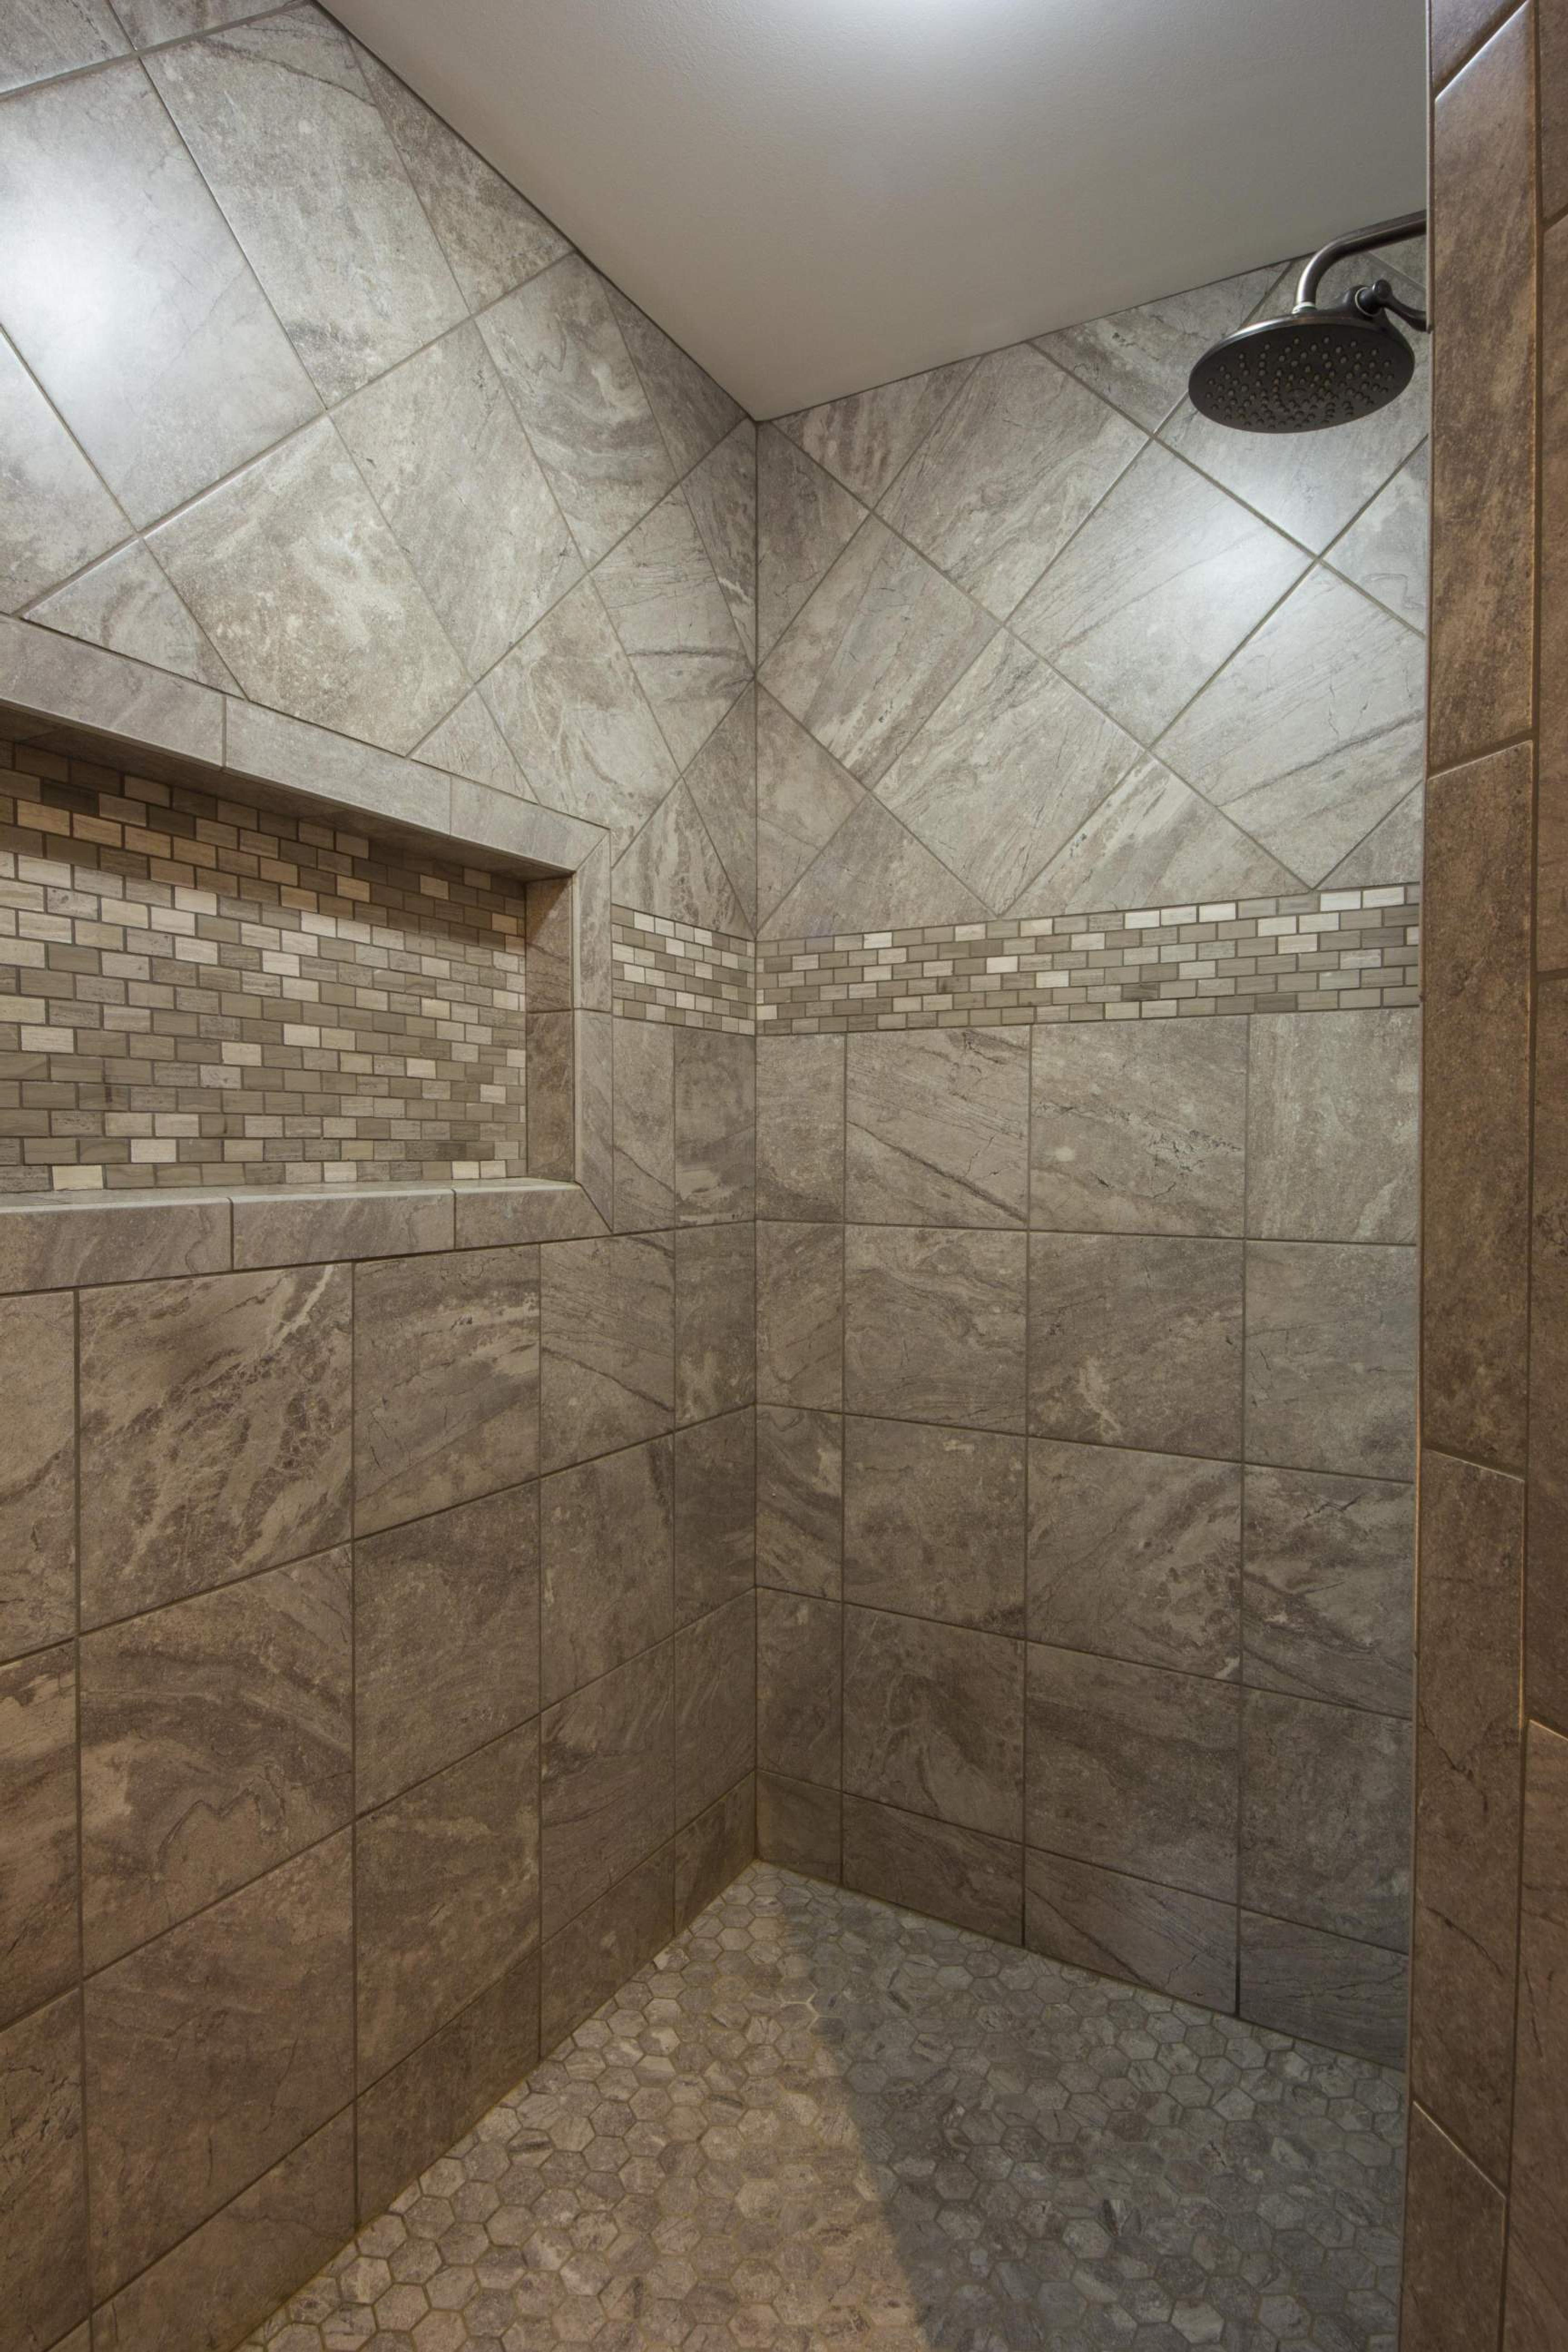 Bathroom featured in the Cleveland C1 By Classic Homes in Akron, OH